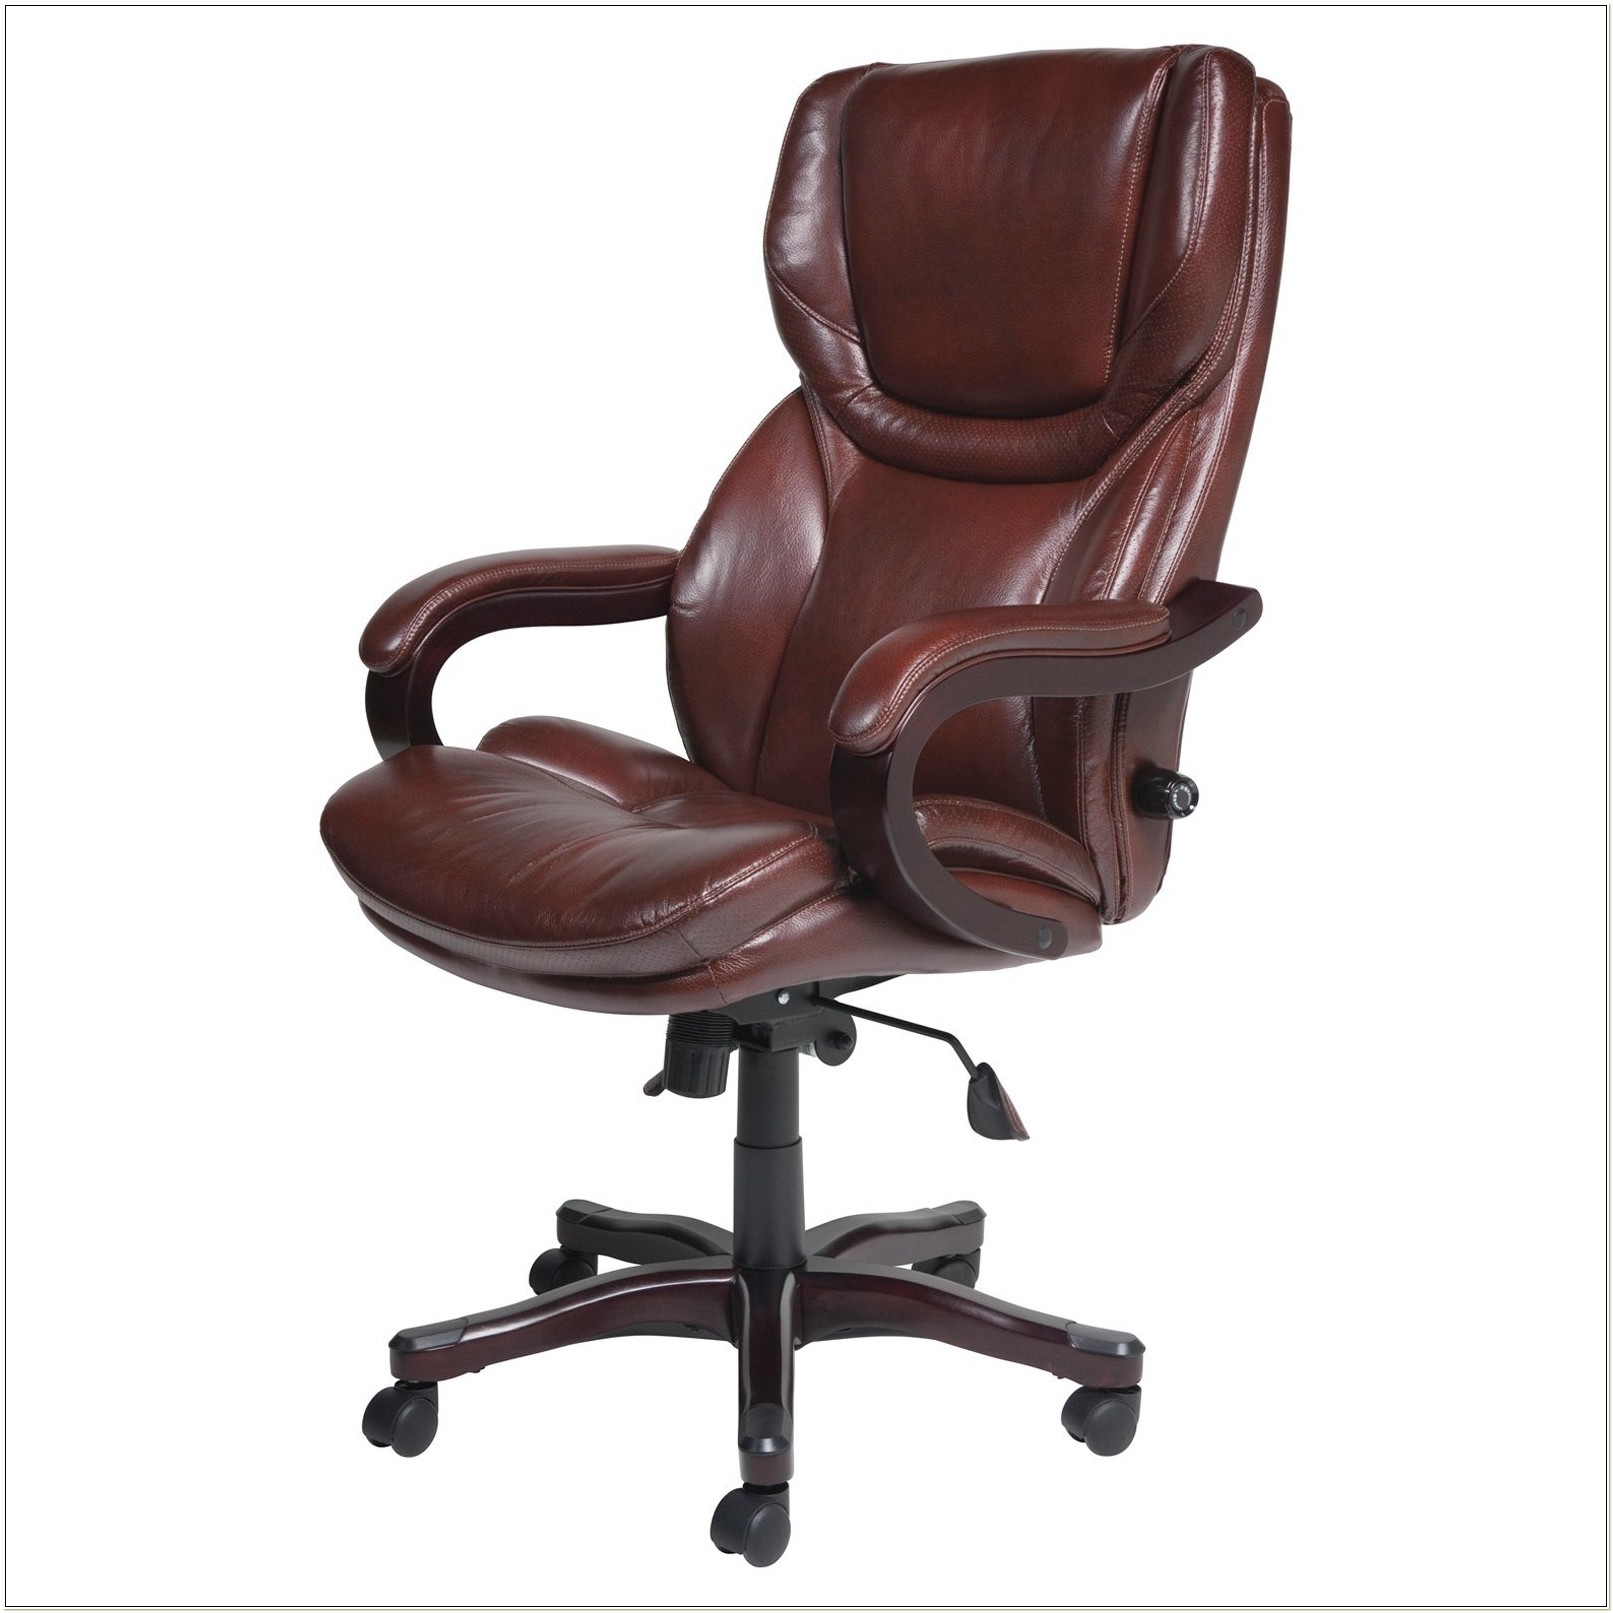 Broyhill Bonded Leather Executive Chair Manual